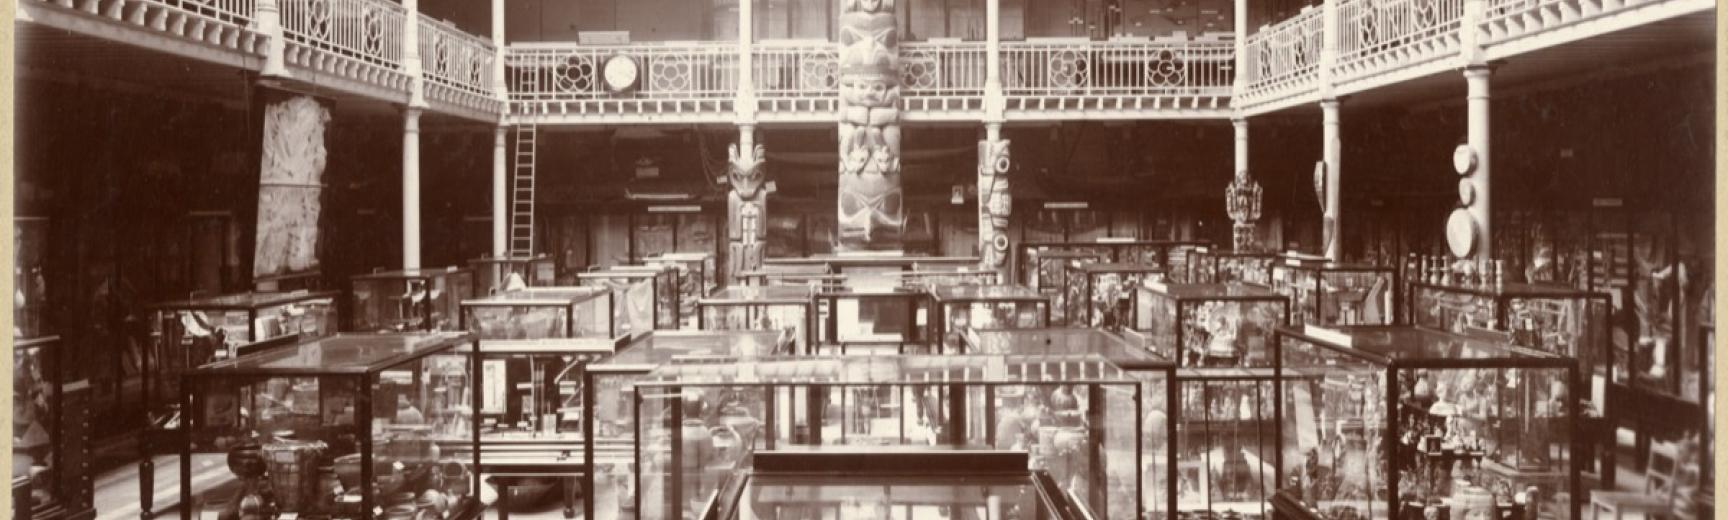 Interior view of the Pitt Rivers Museum, looking towards the east end of the Court, showing the Haida totem pole. Photograph by Alfred Robinson. Oxford, England. Circa 1901. (Copyright Pitt Rivers Museum, University of Oxford. Accession Number: 1998.267.2